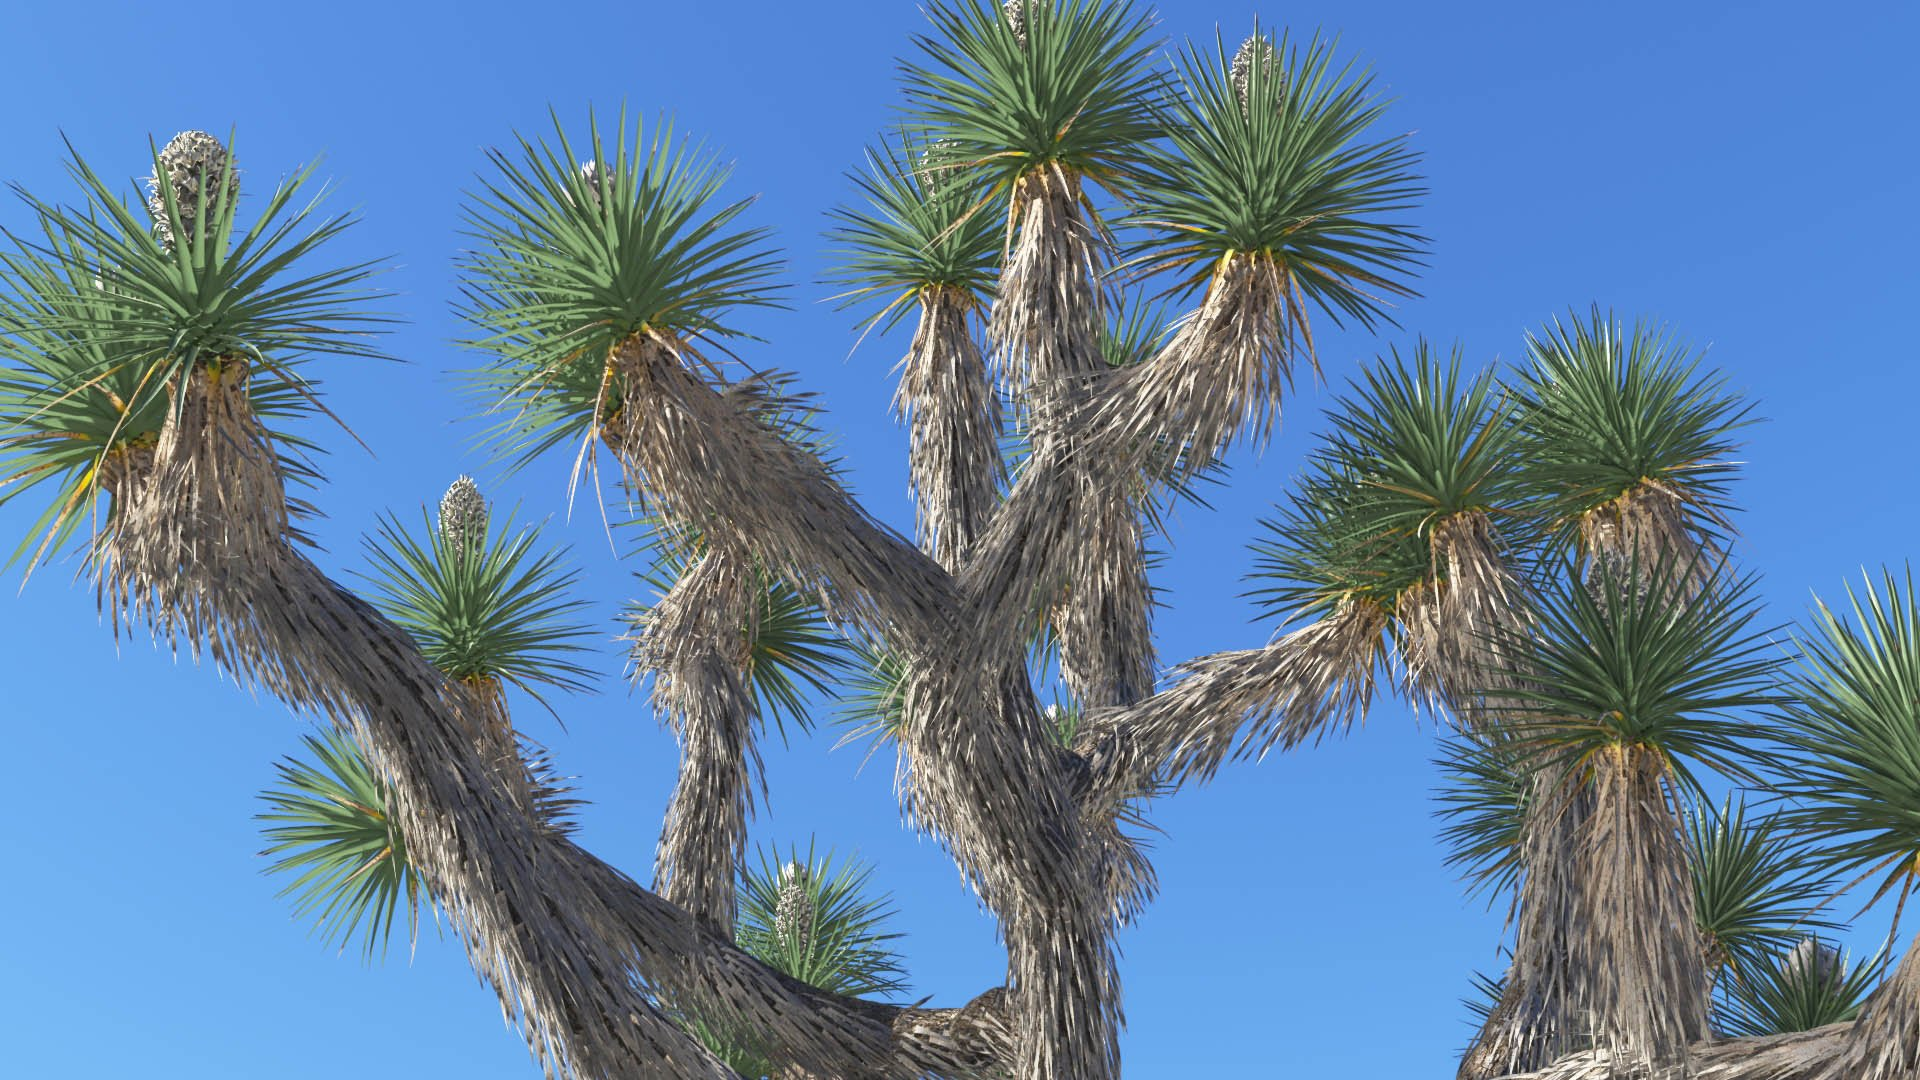 3D model of the Joshua tree Yucca brevifolia close-up